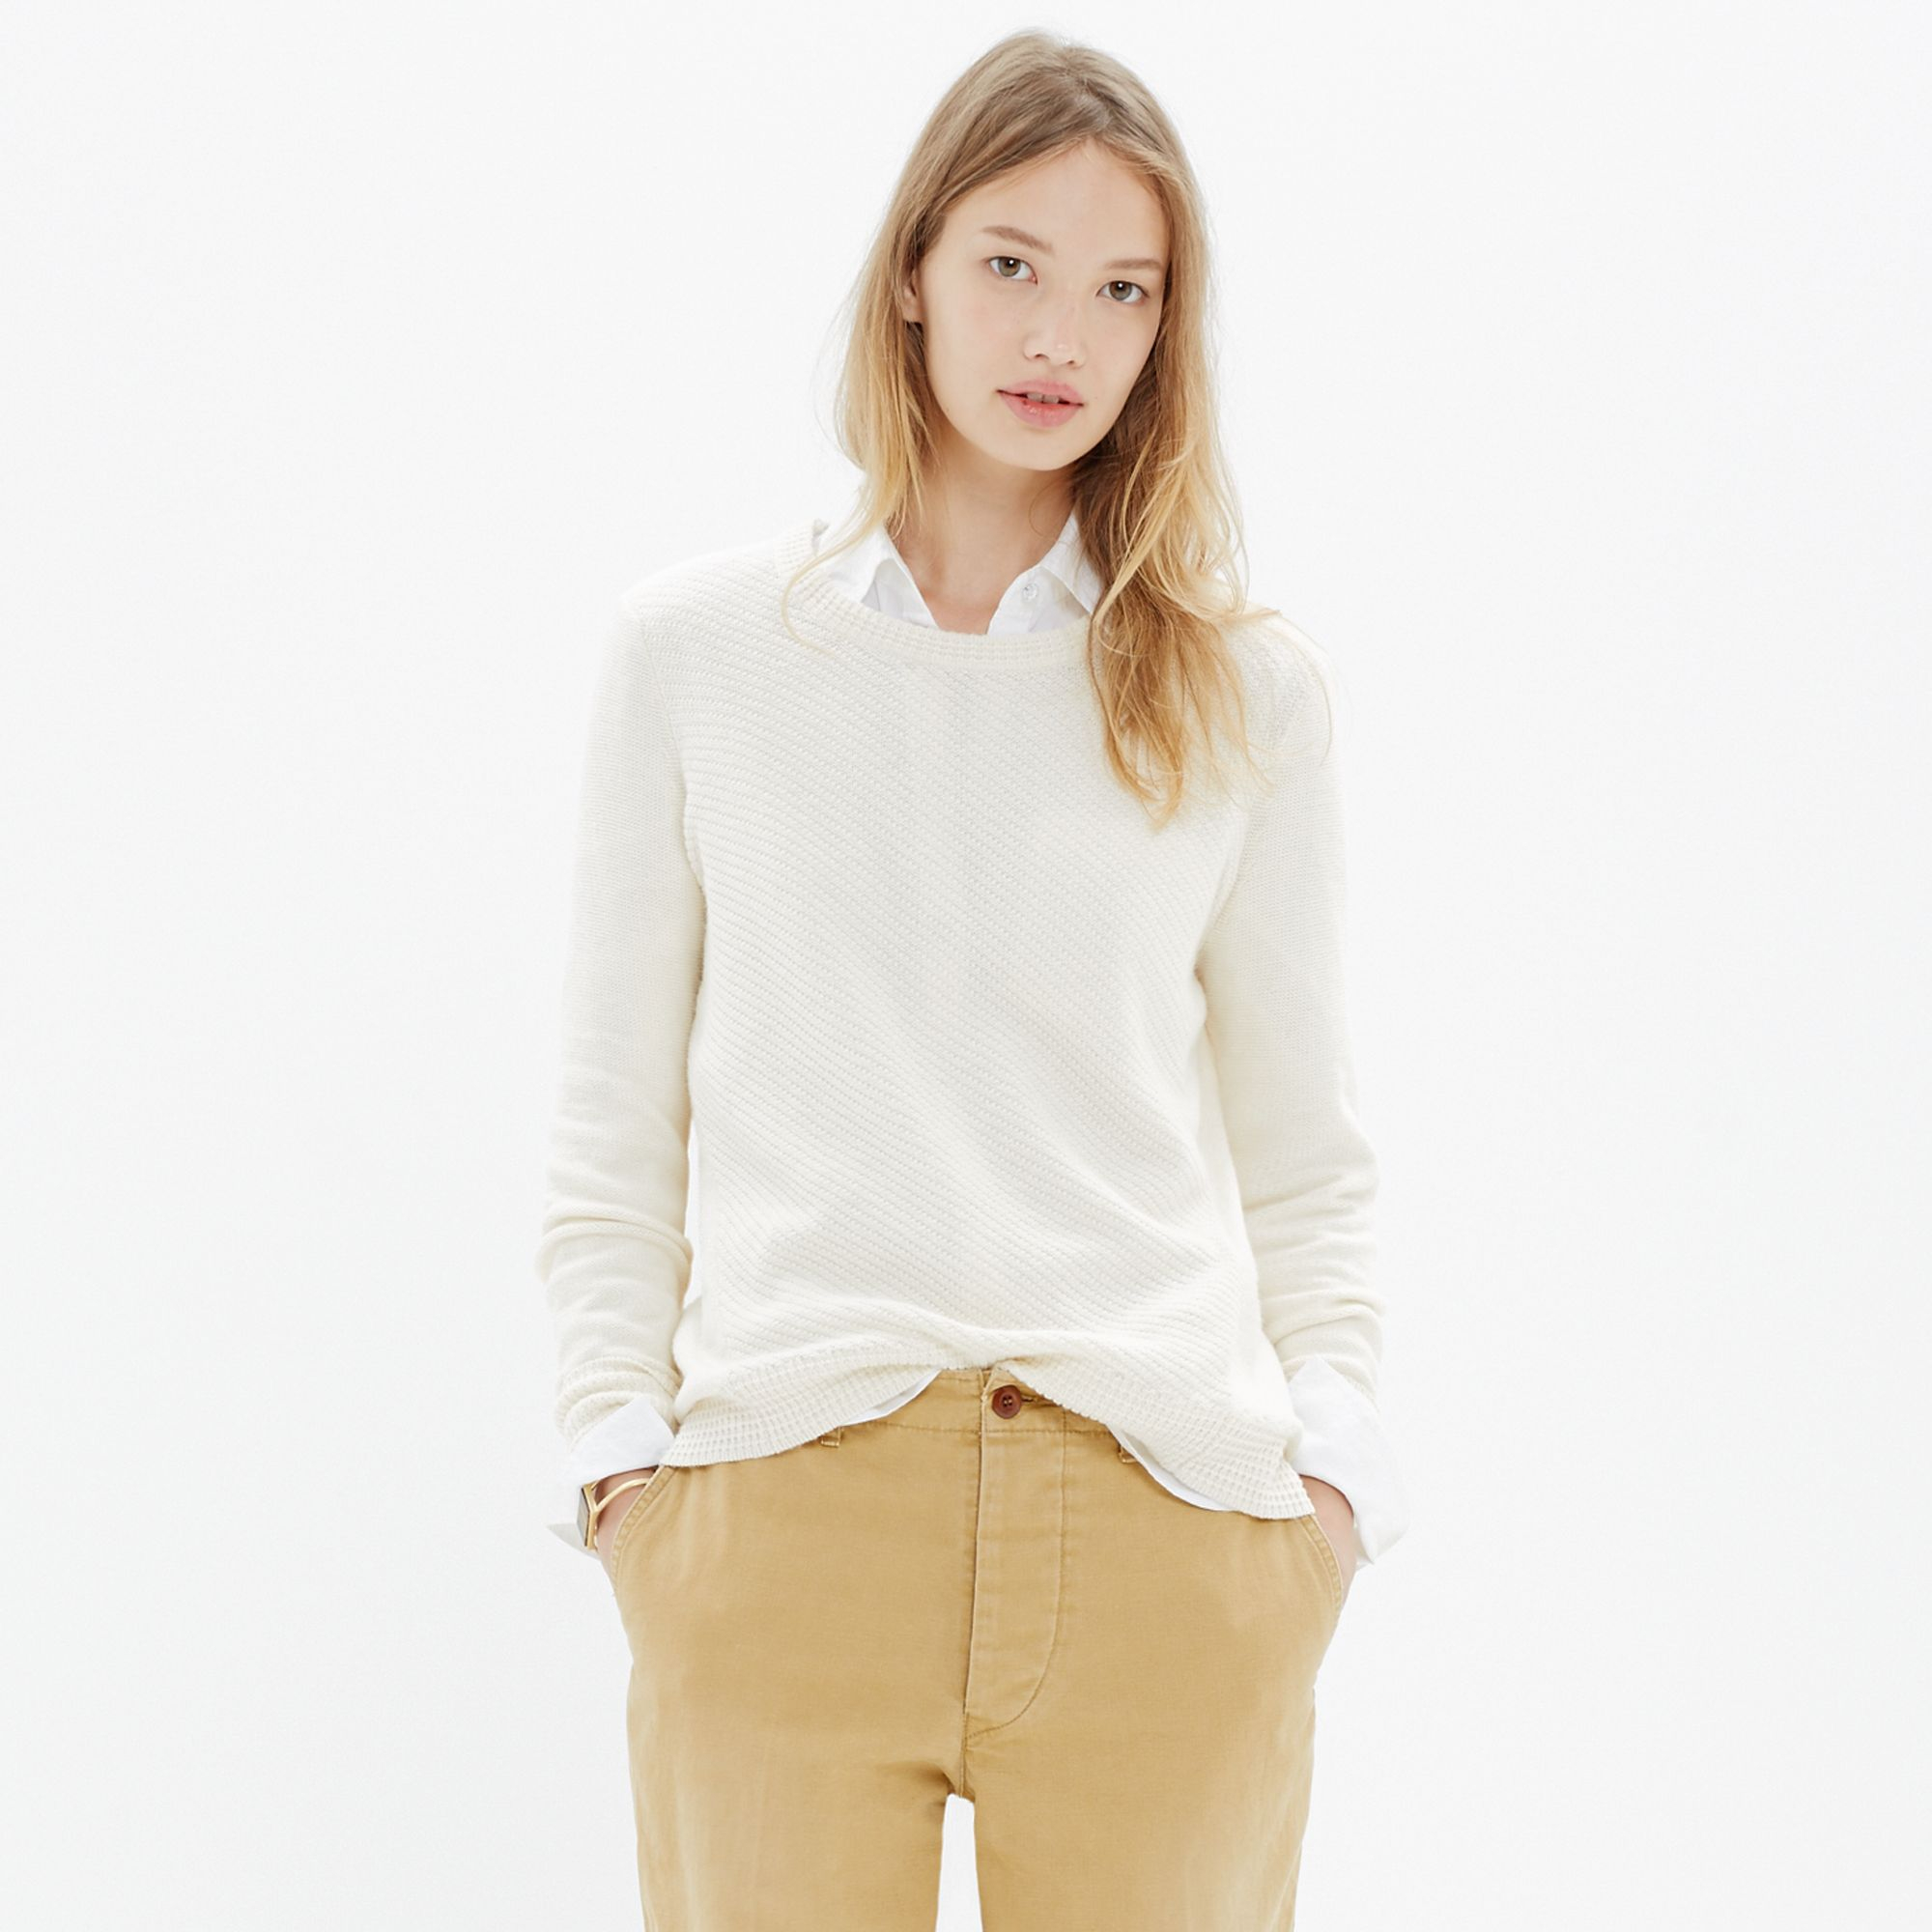 Madewell Back-Zip Pullover Sweater in Natural | Lyst